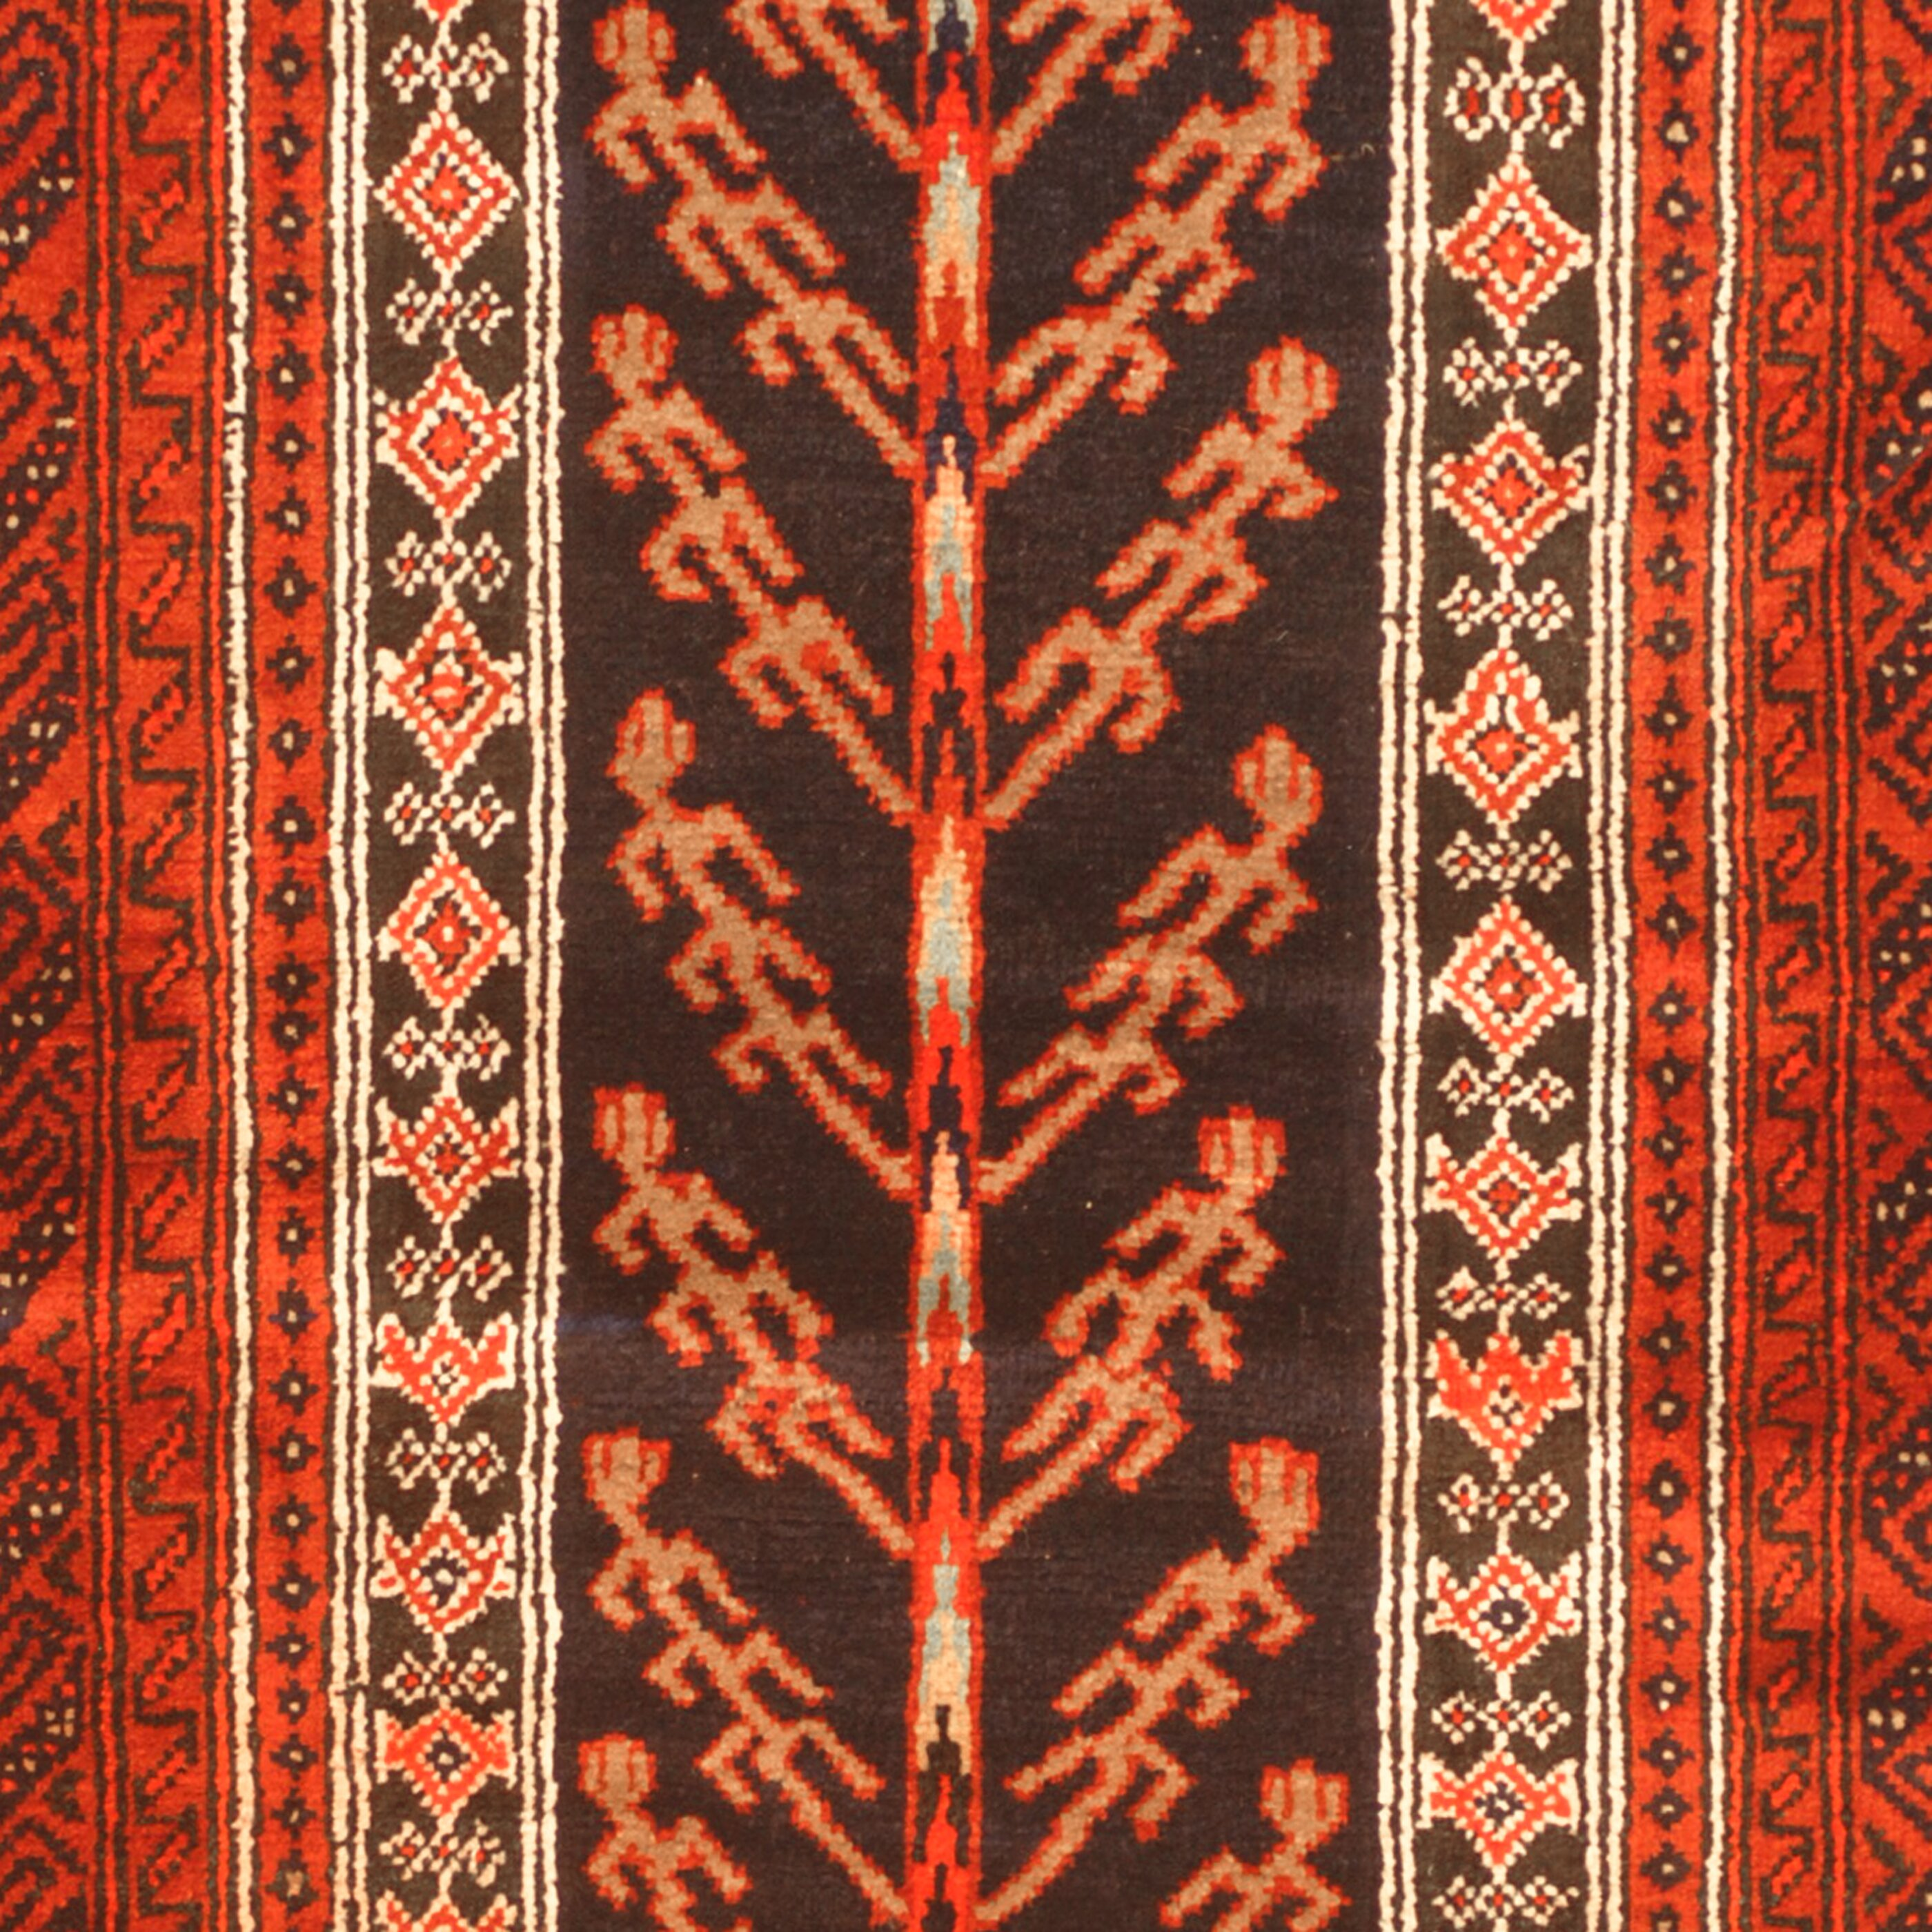 Herat Oriental Hand Tufted Wool Red Black Area Rug: Herat Oriental Balouchi Hand-Knotted Navy/Red Area Rug